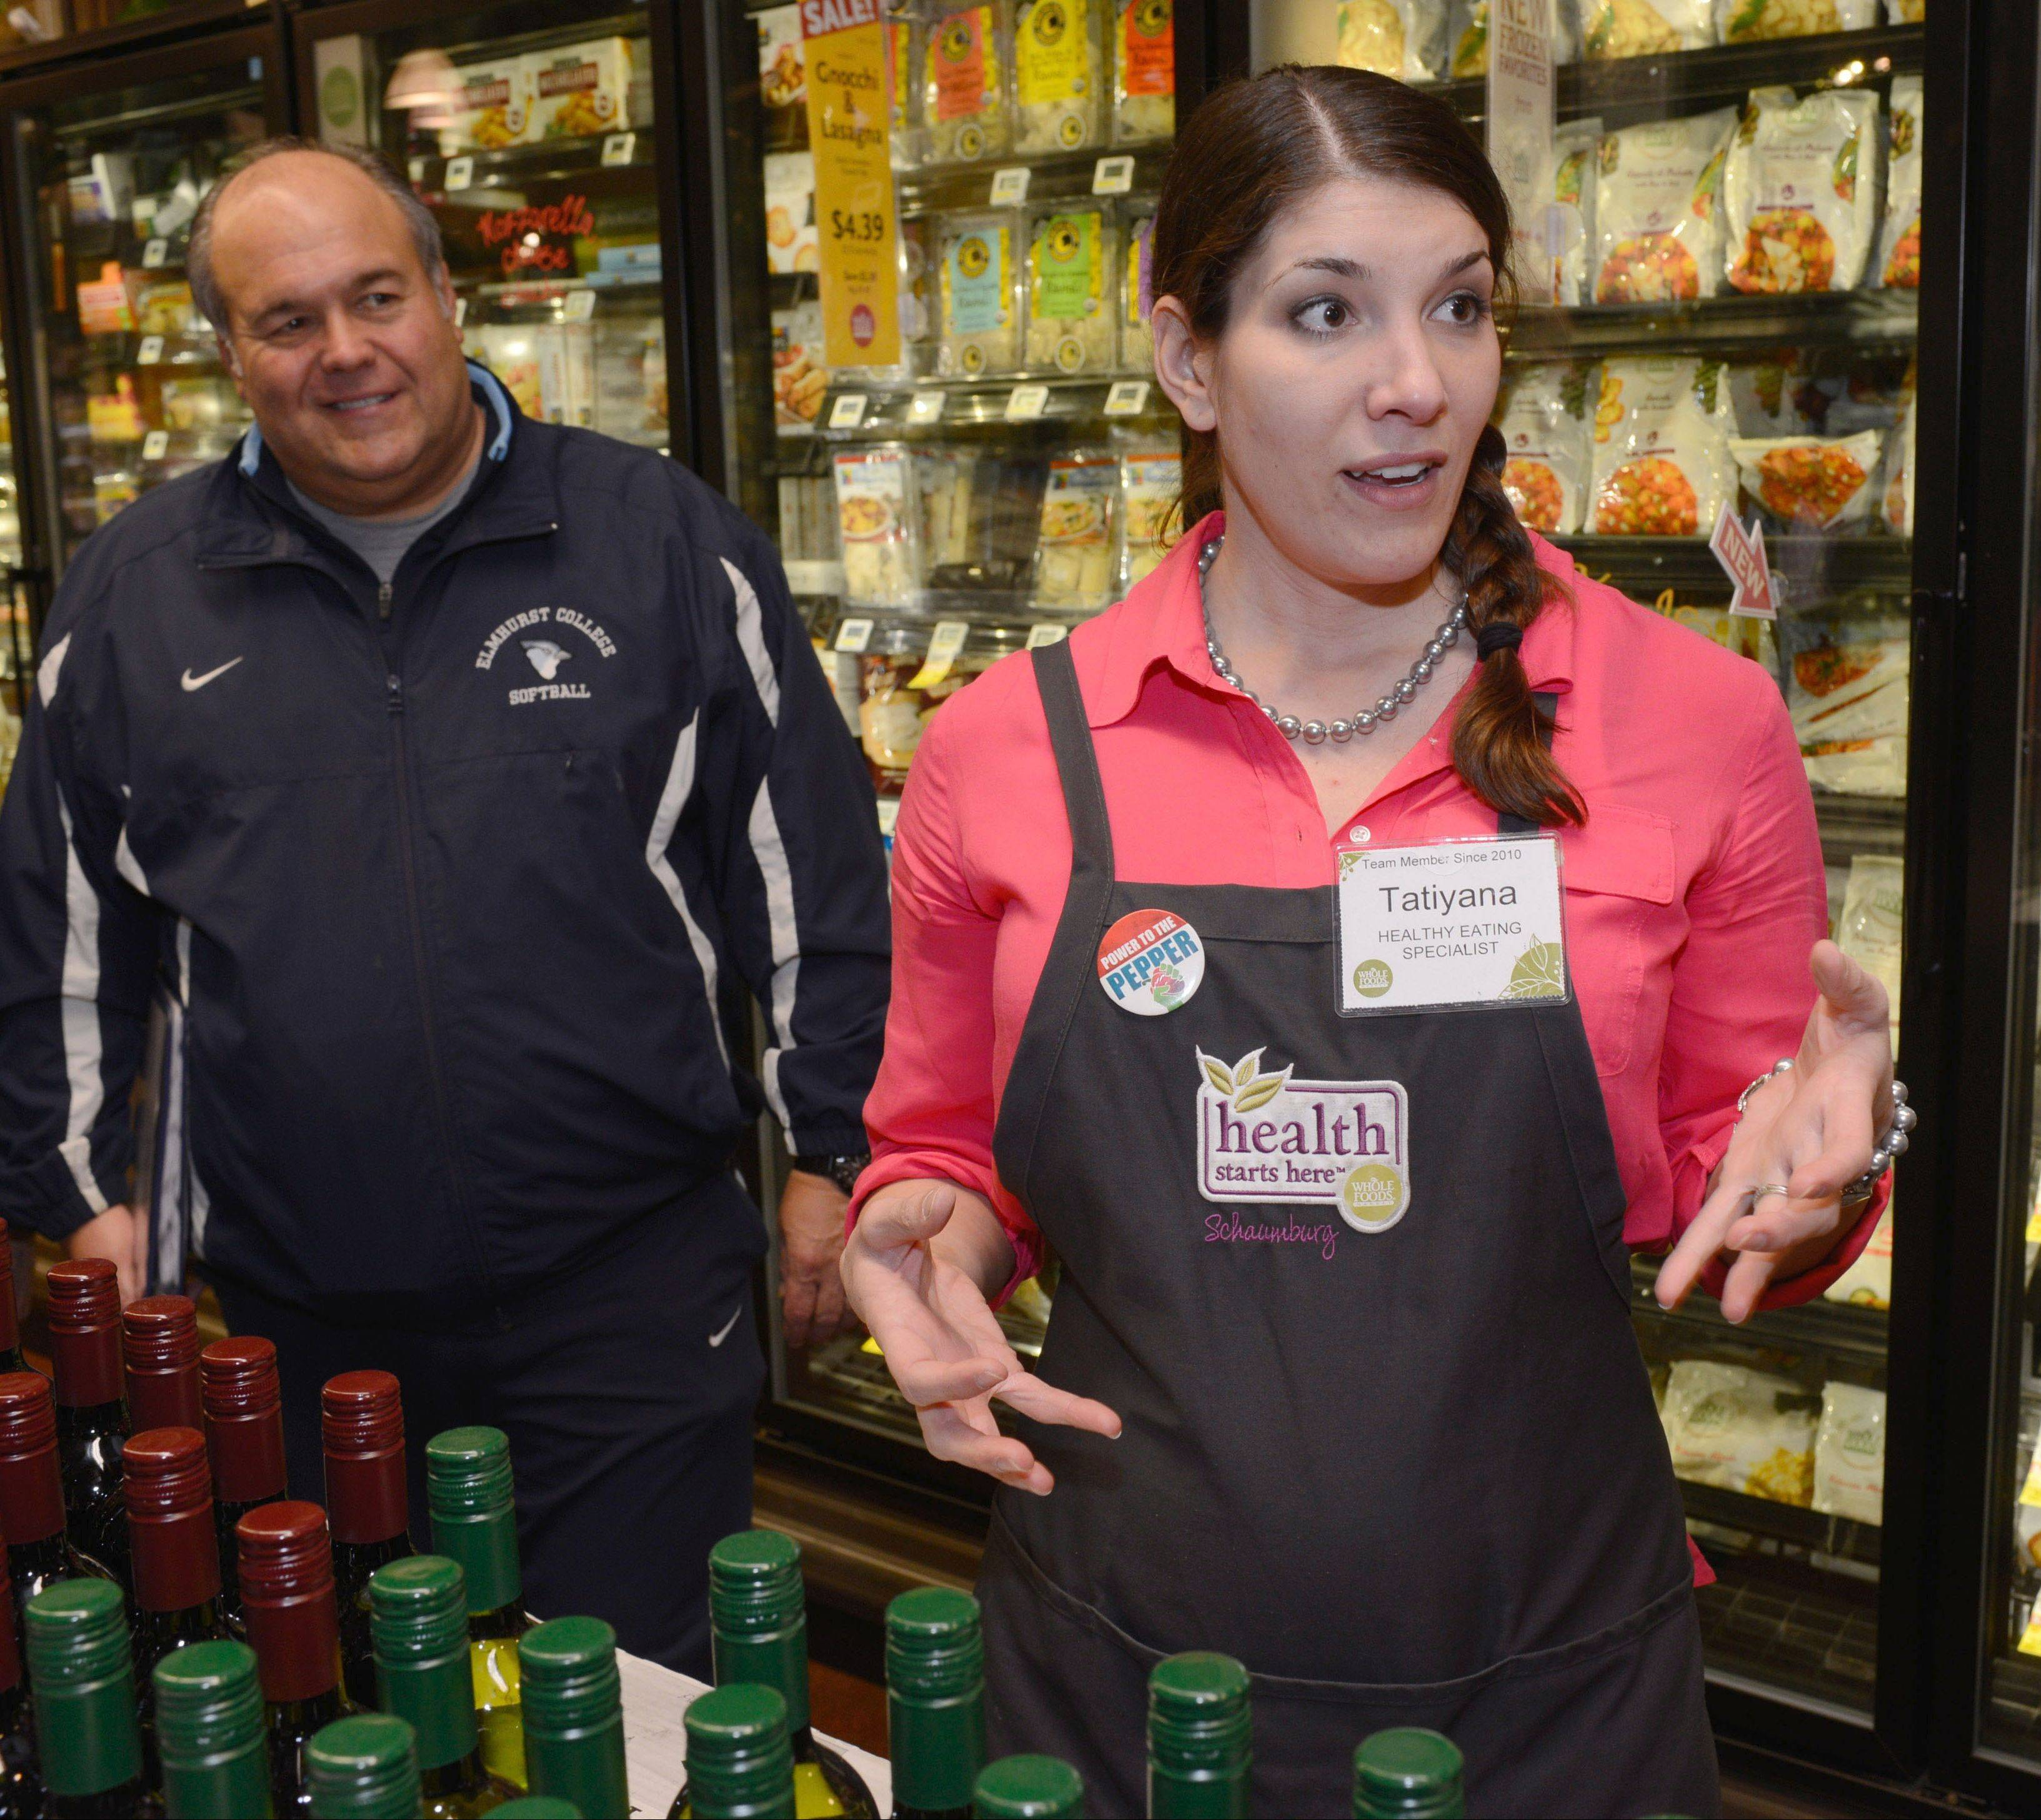 Healthy eating specialist Tatiyana Baukovic discusses food choices with Fittest Loser Contestants at Whole Foods, Schaumburg.